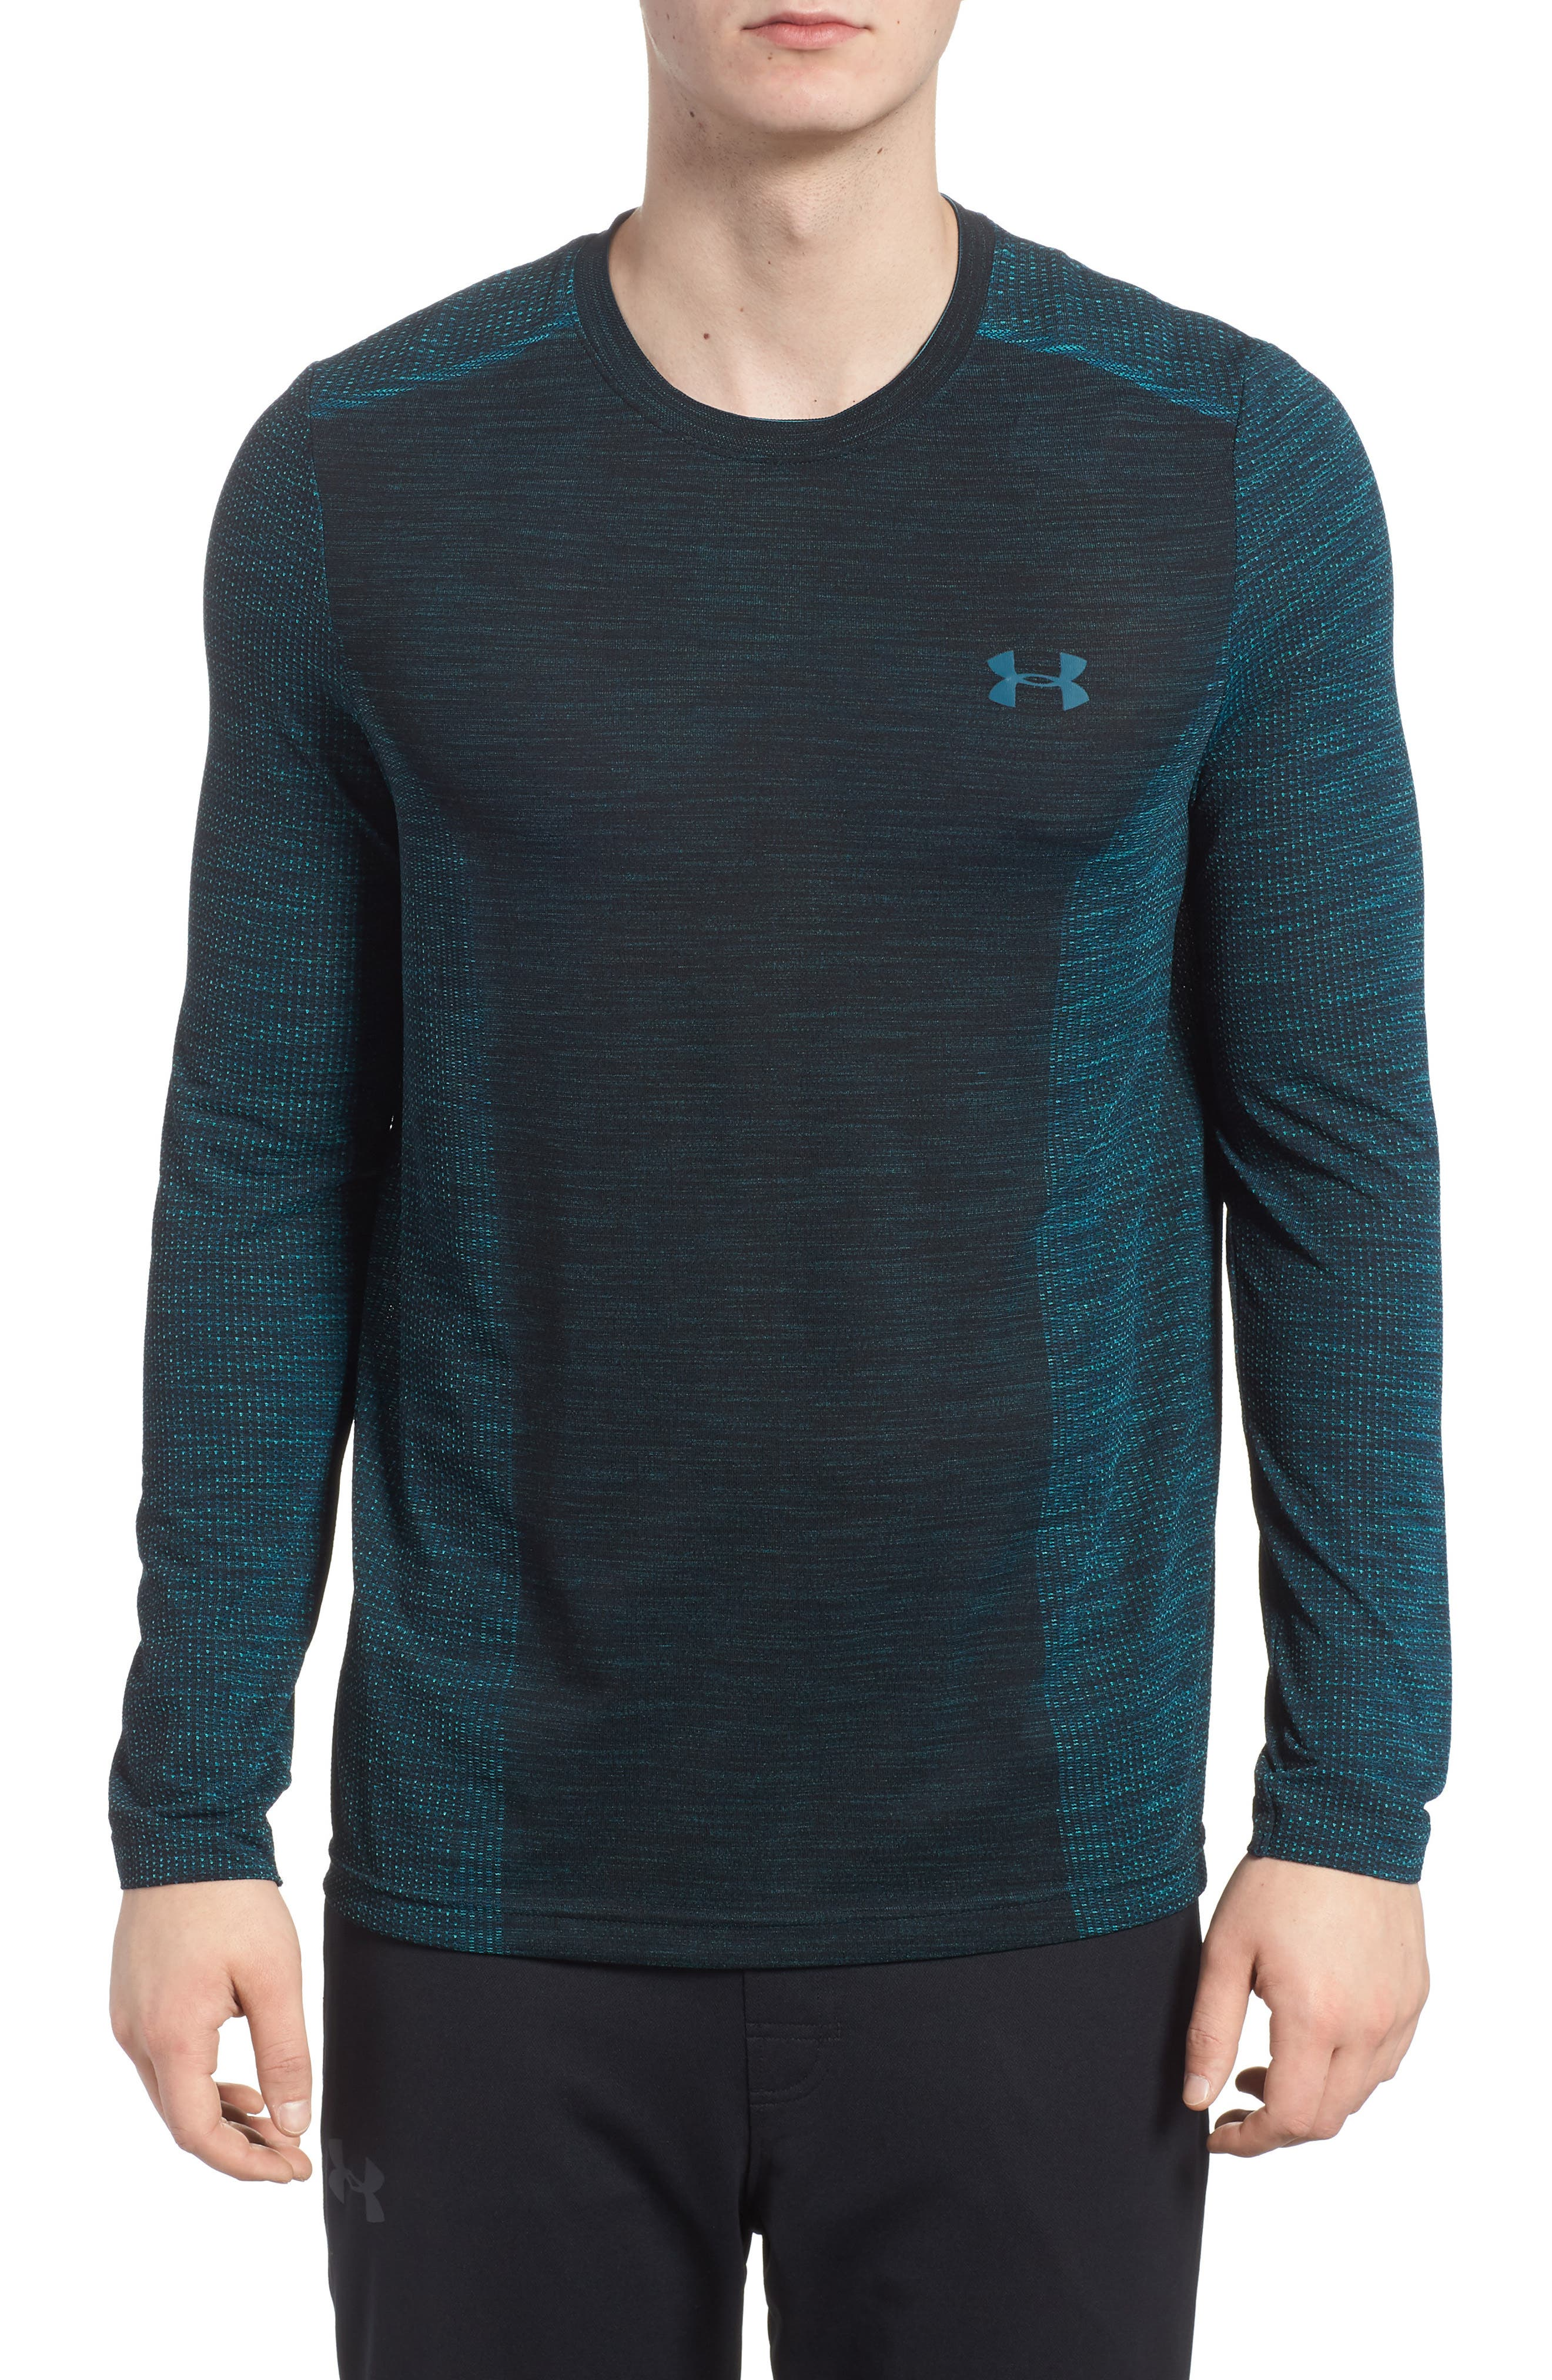 Threadborne Fitted Training T-Shirt,                         Main,                         color, Tourmaline Teal/  Teal